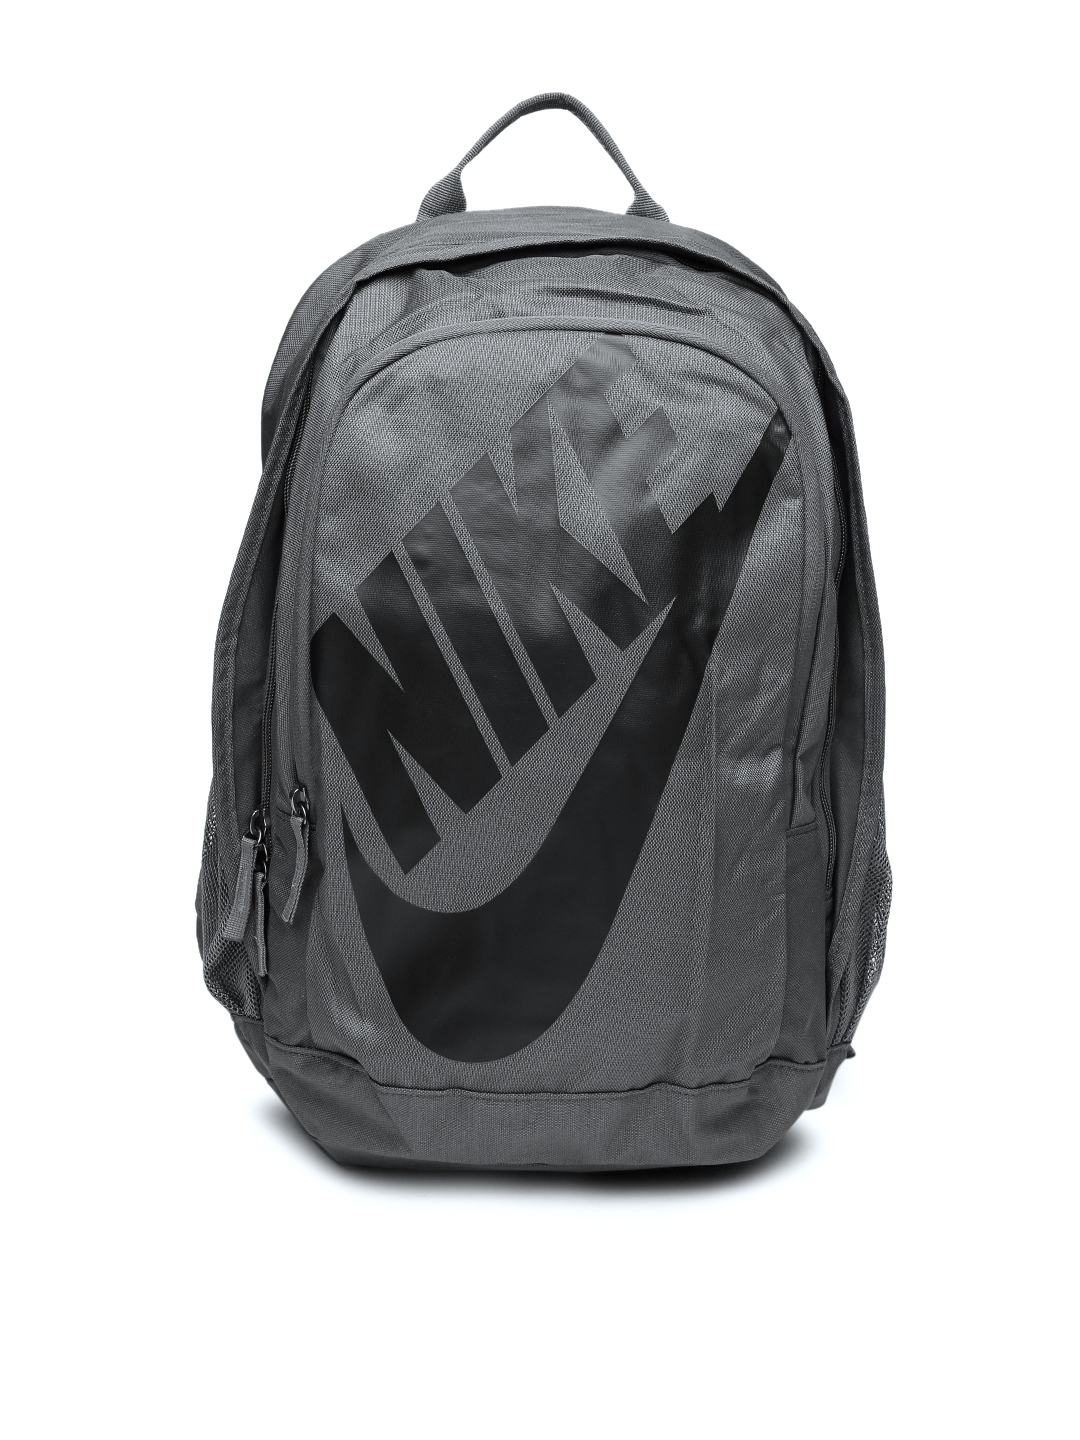 Buy Nike Unisex Charcoal Grey Hayward Futura 2.0 Printed Backpack -  Backpacks for Unisex 1723864  f699a44796797